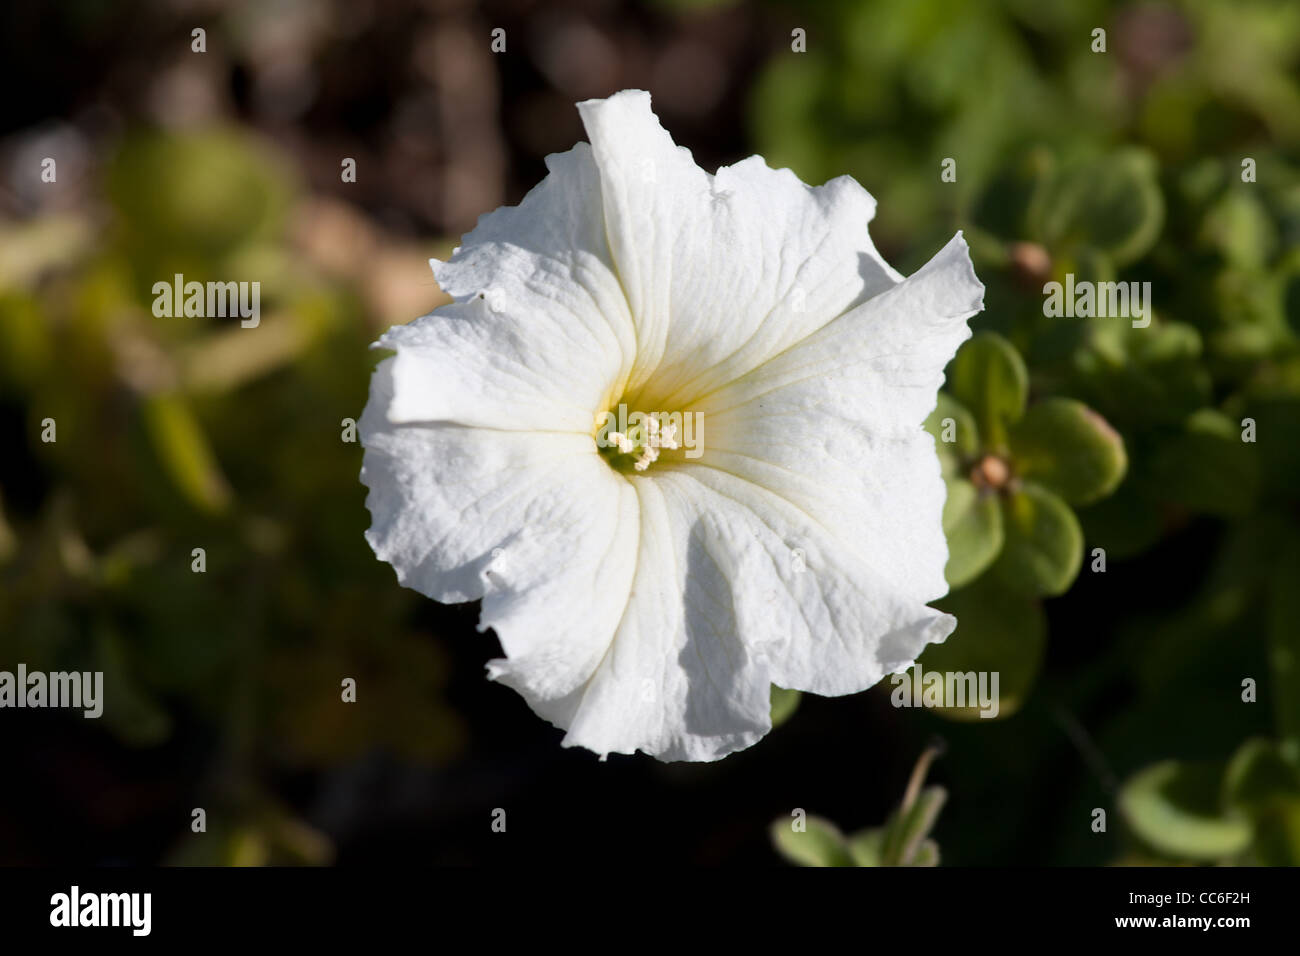 white petunia flower with leafs in garden - Stock Image